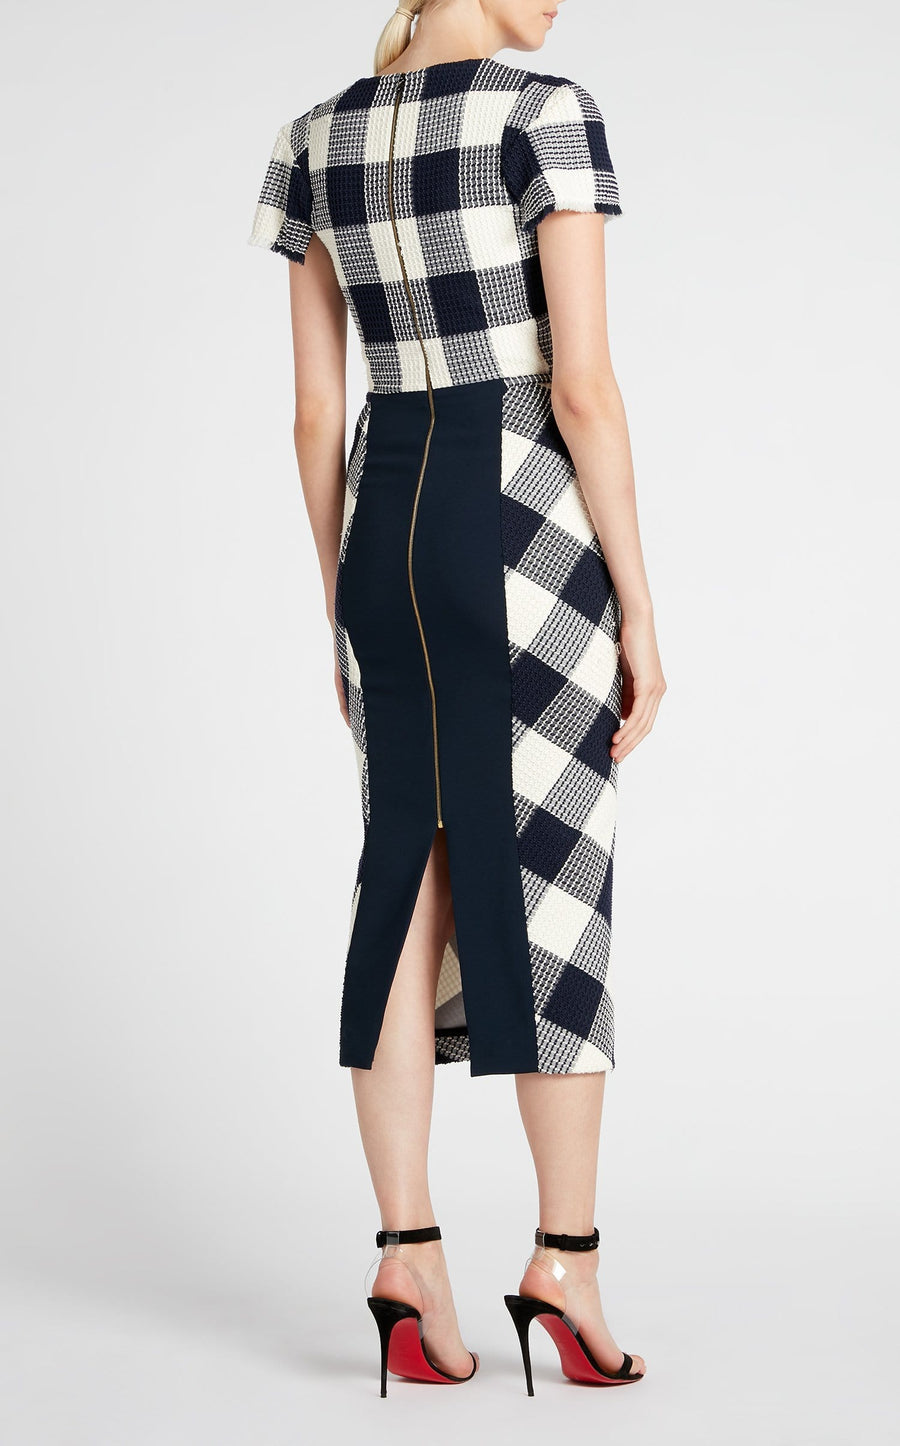 Chaney Dress In Navy/White from Roland Mouret